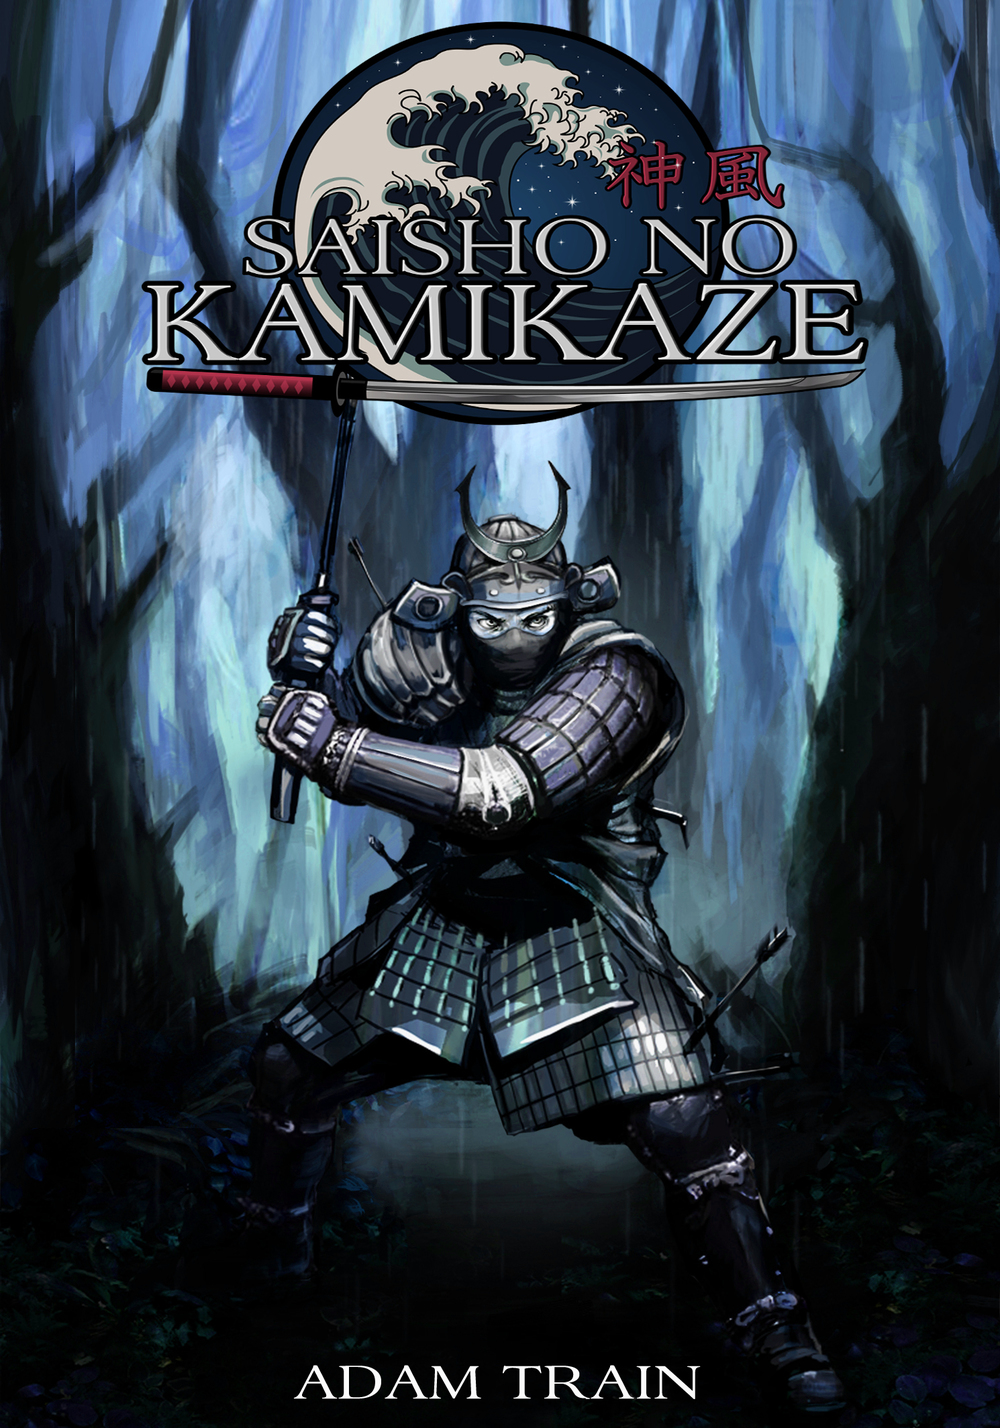 In the summer of 1281, the colossal Mongol war machine set its sights on the islands of Japan. Dispatching a monstrous fleet, their black sails loom on the horizon. Kaito, a young samurai commander, is charged with the defence of the nation.